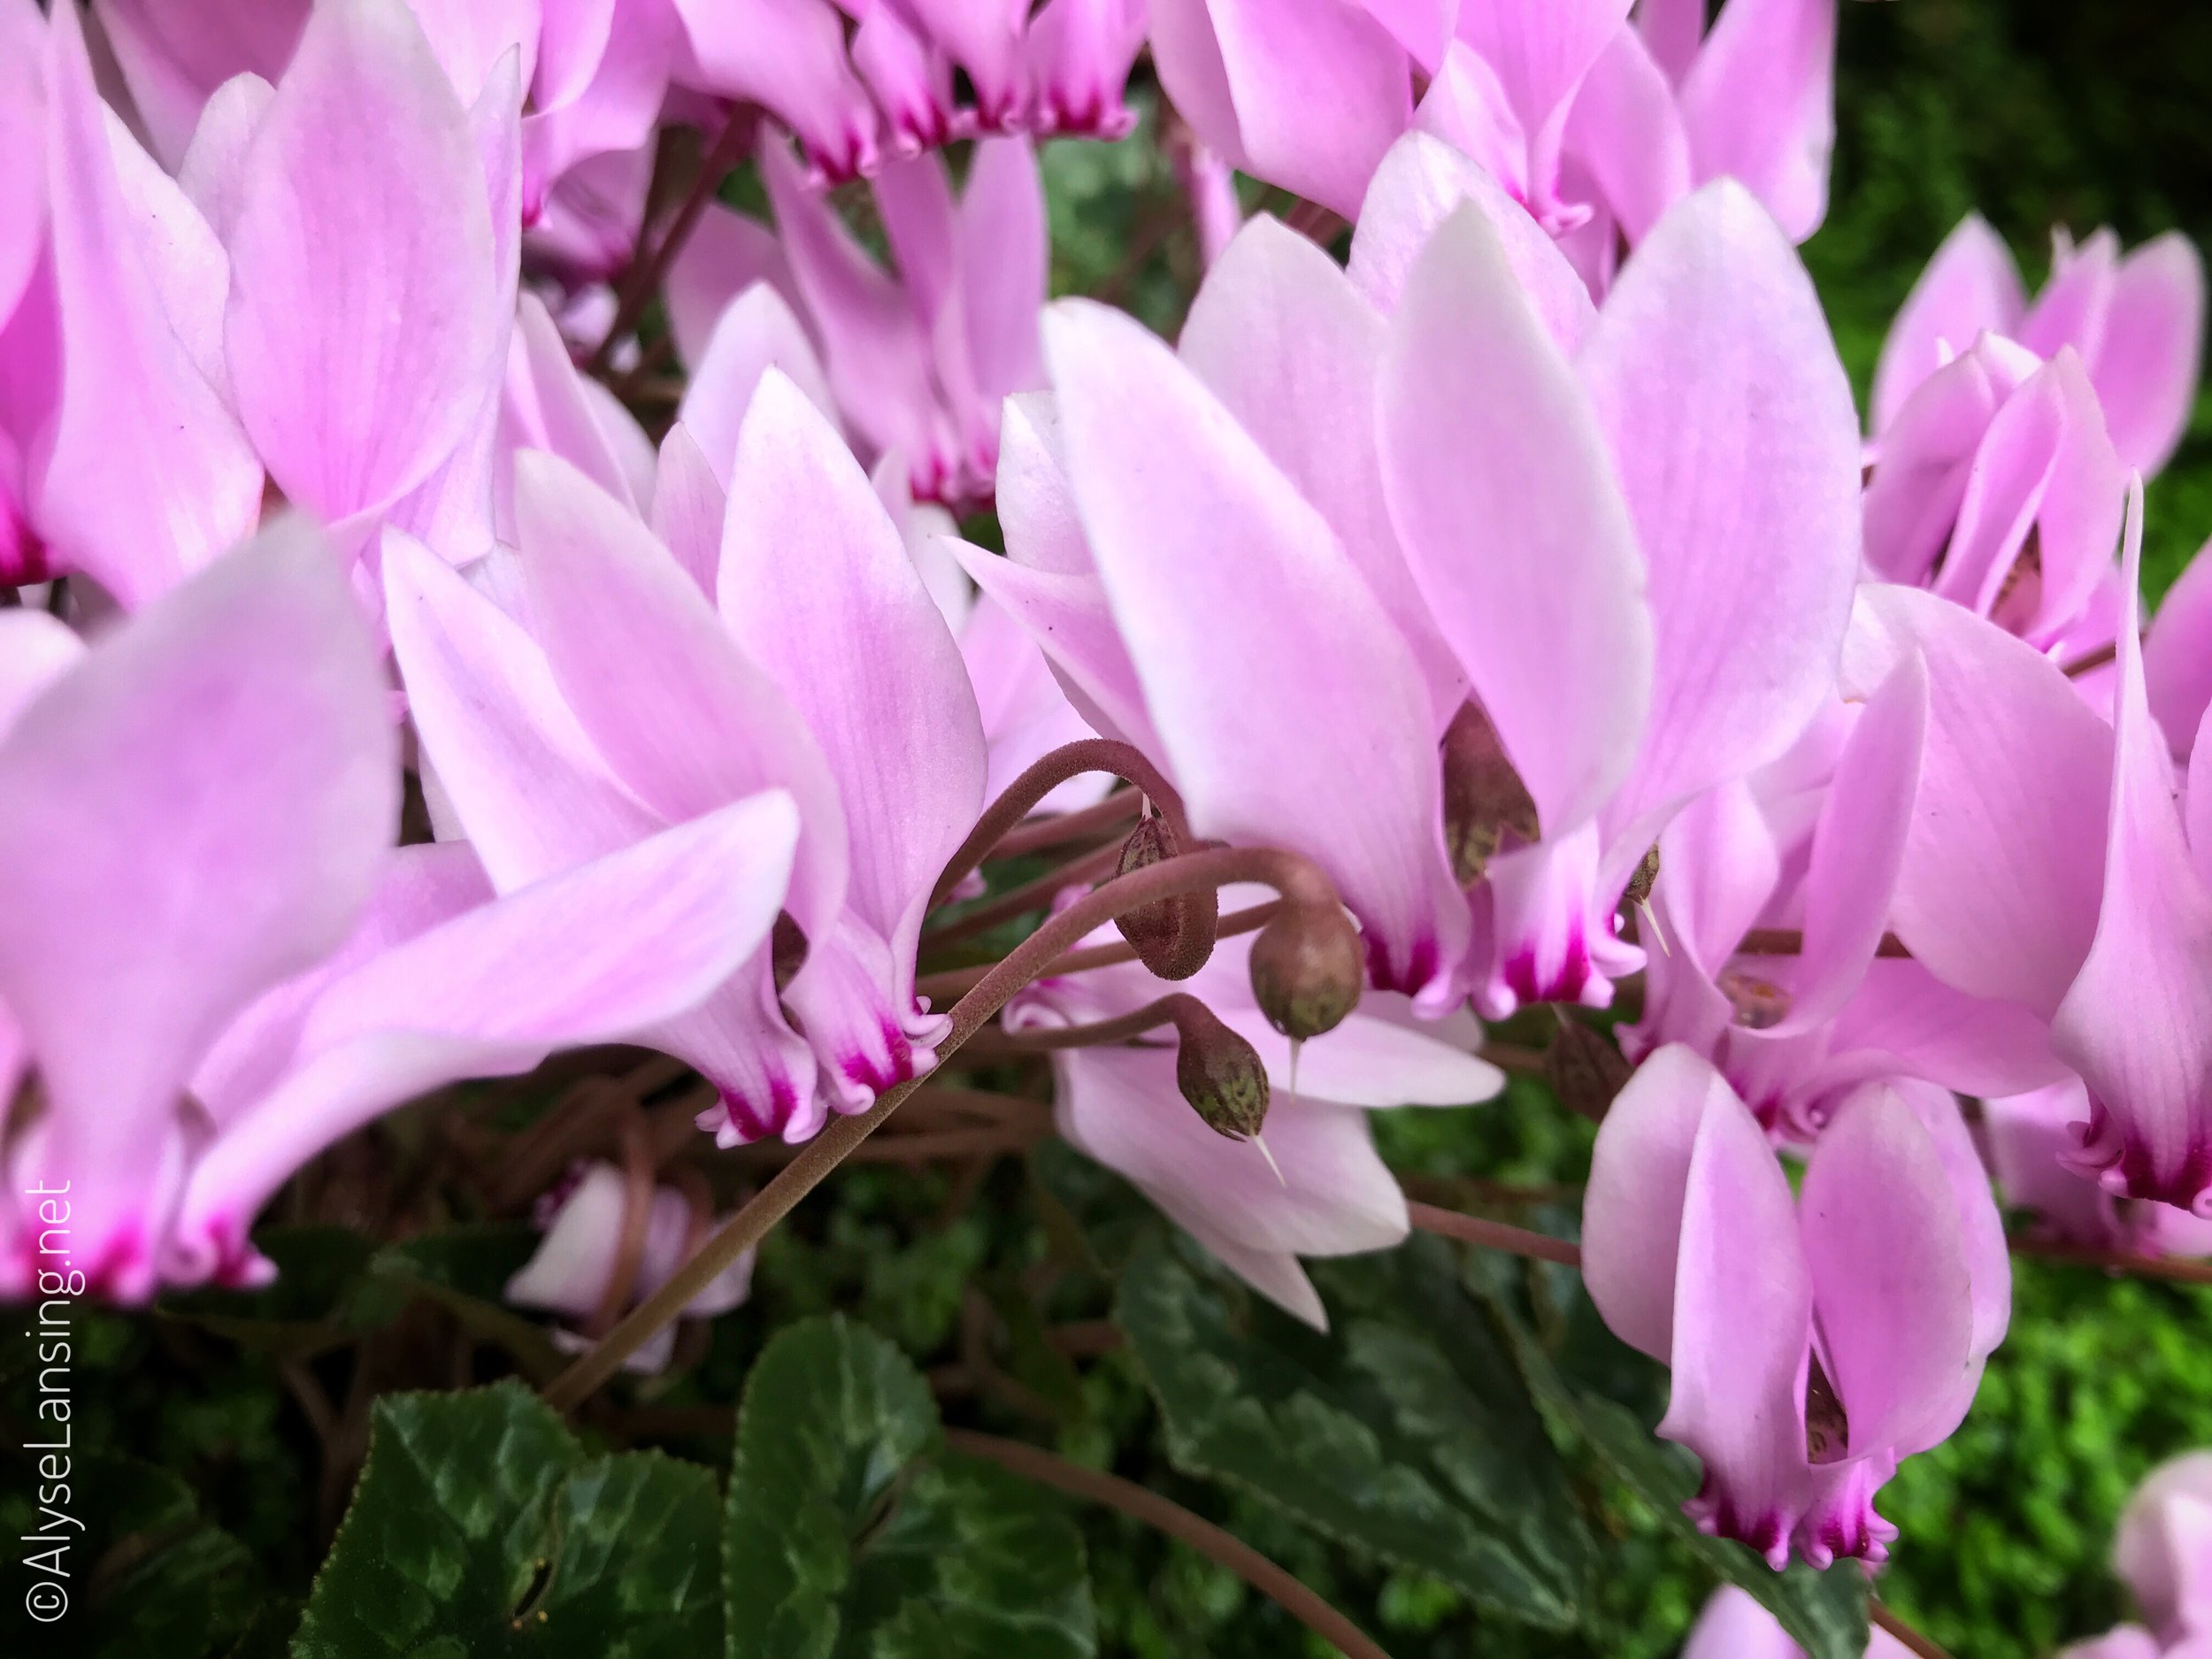 Seeds form and stems curl as the petals drop